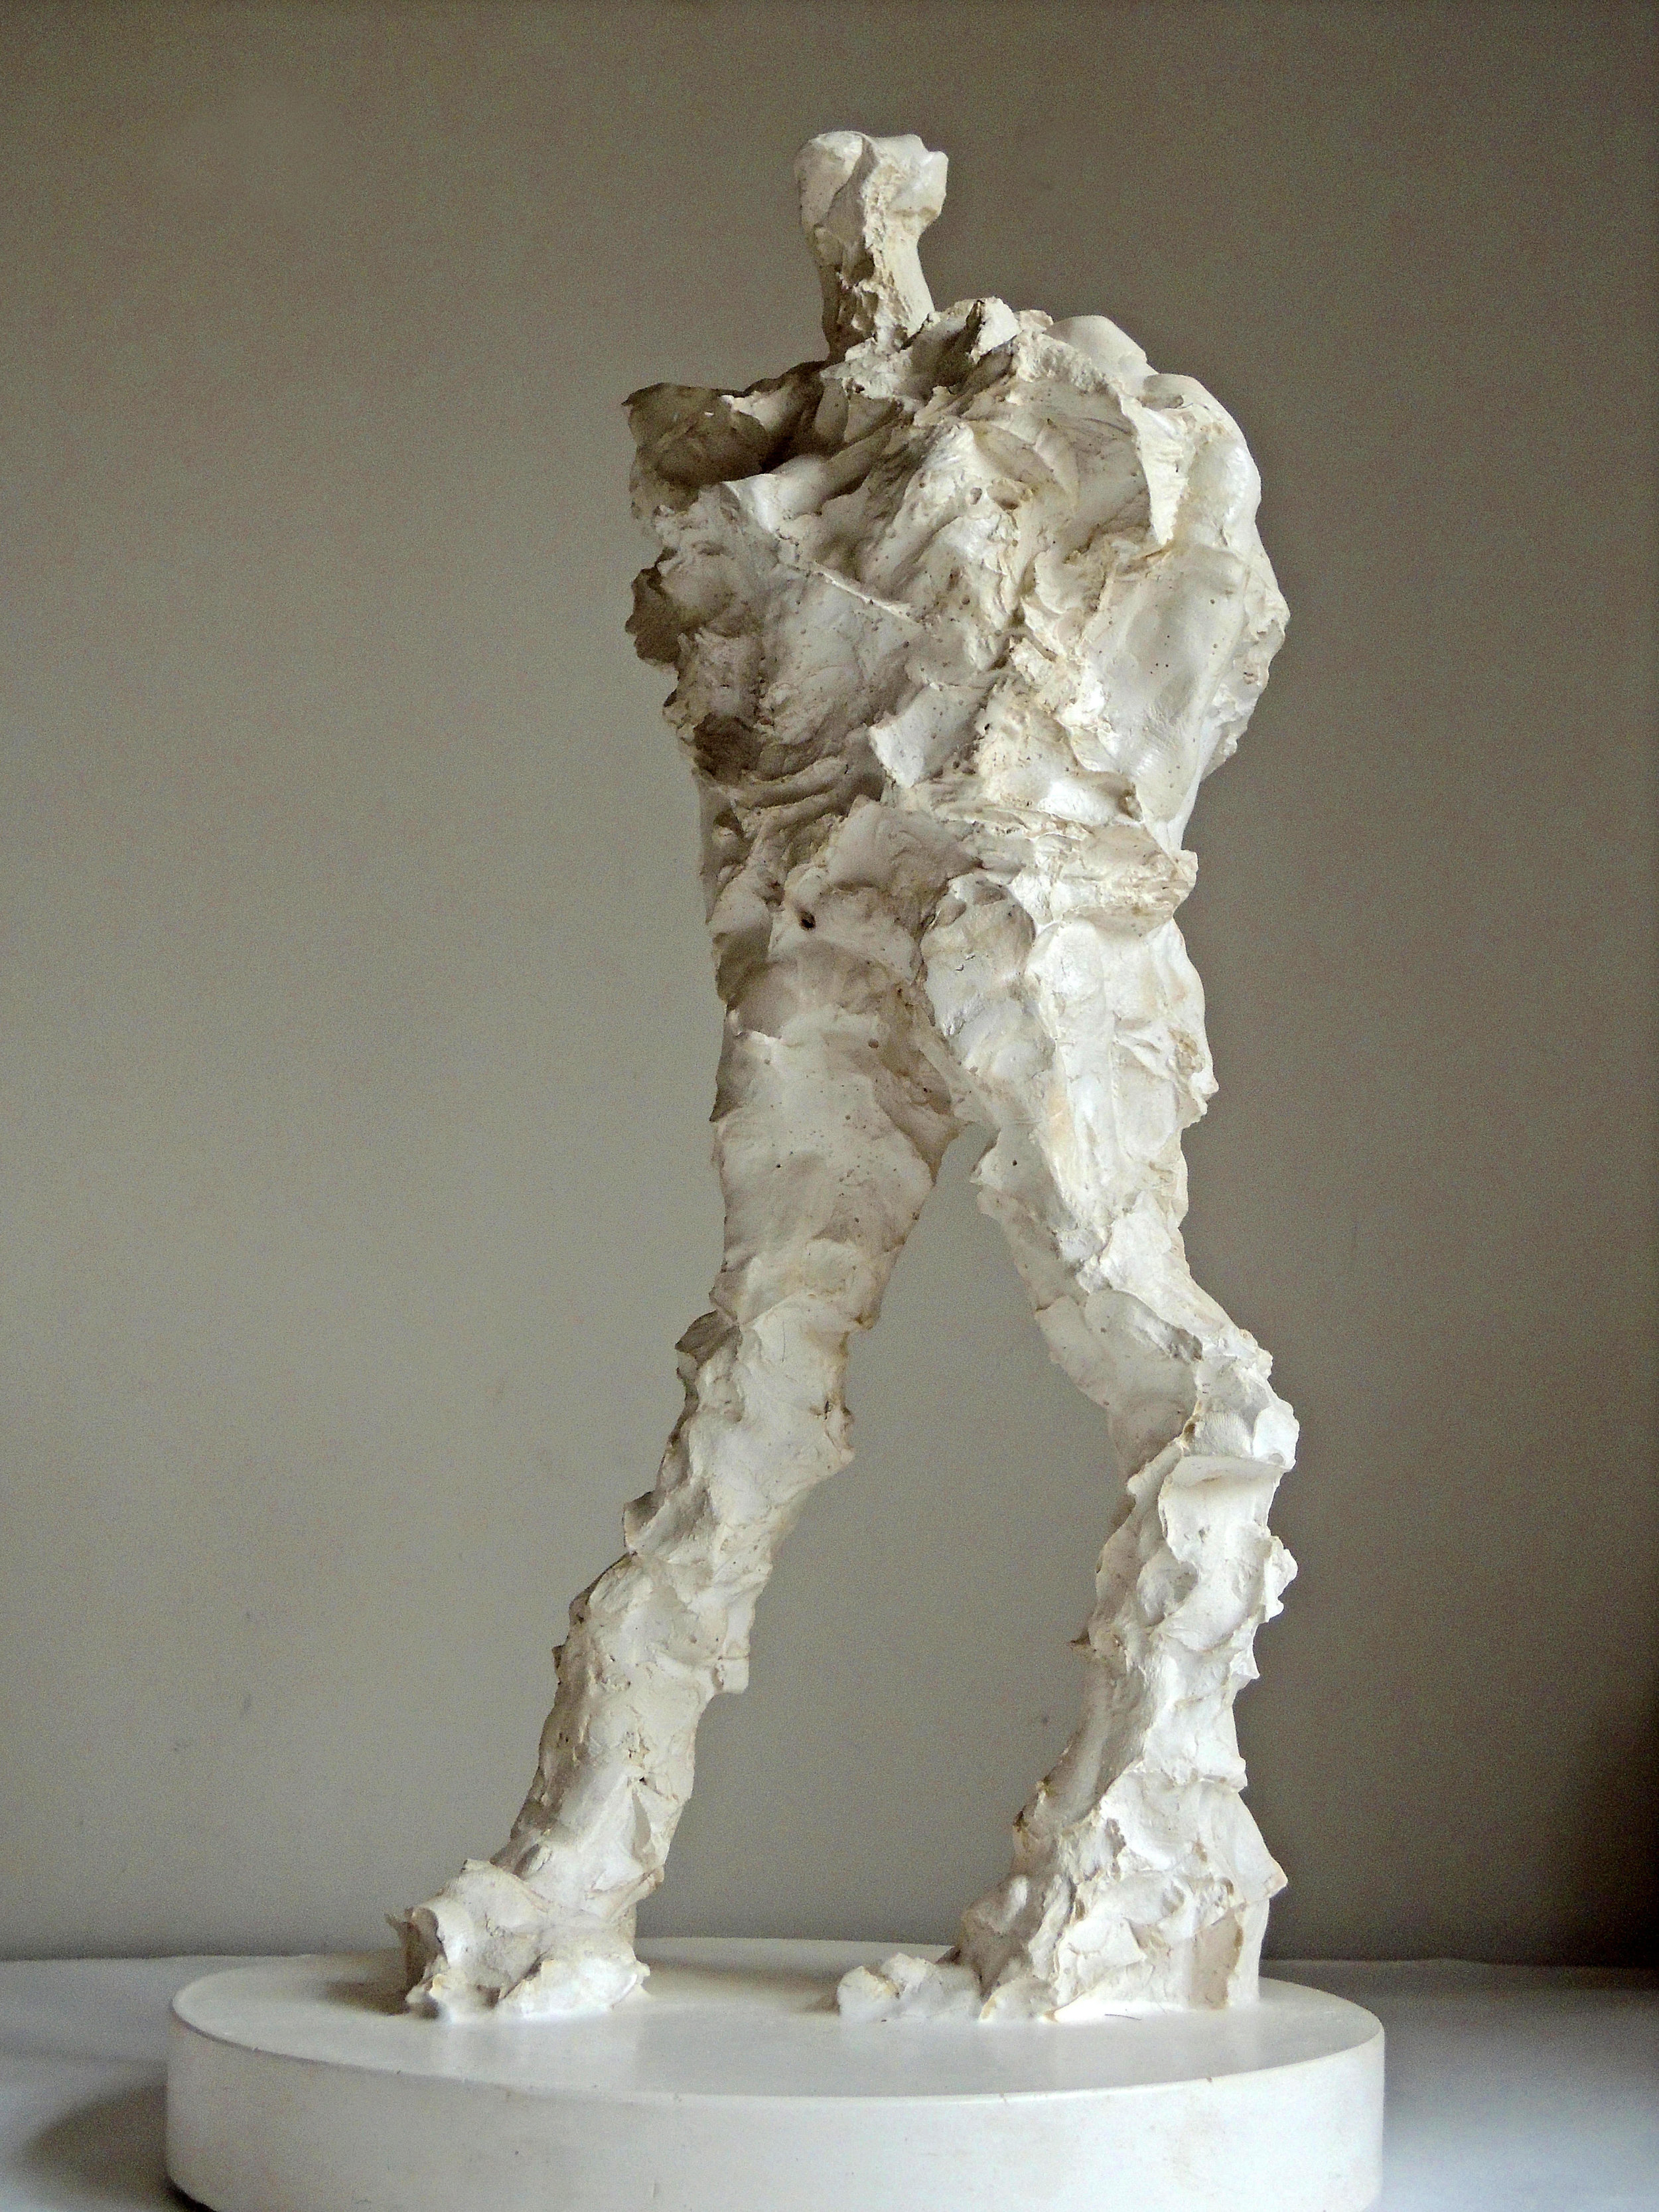 Plaster maquette, by Maurice Blik